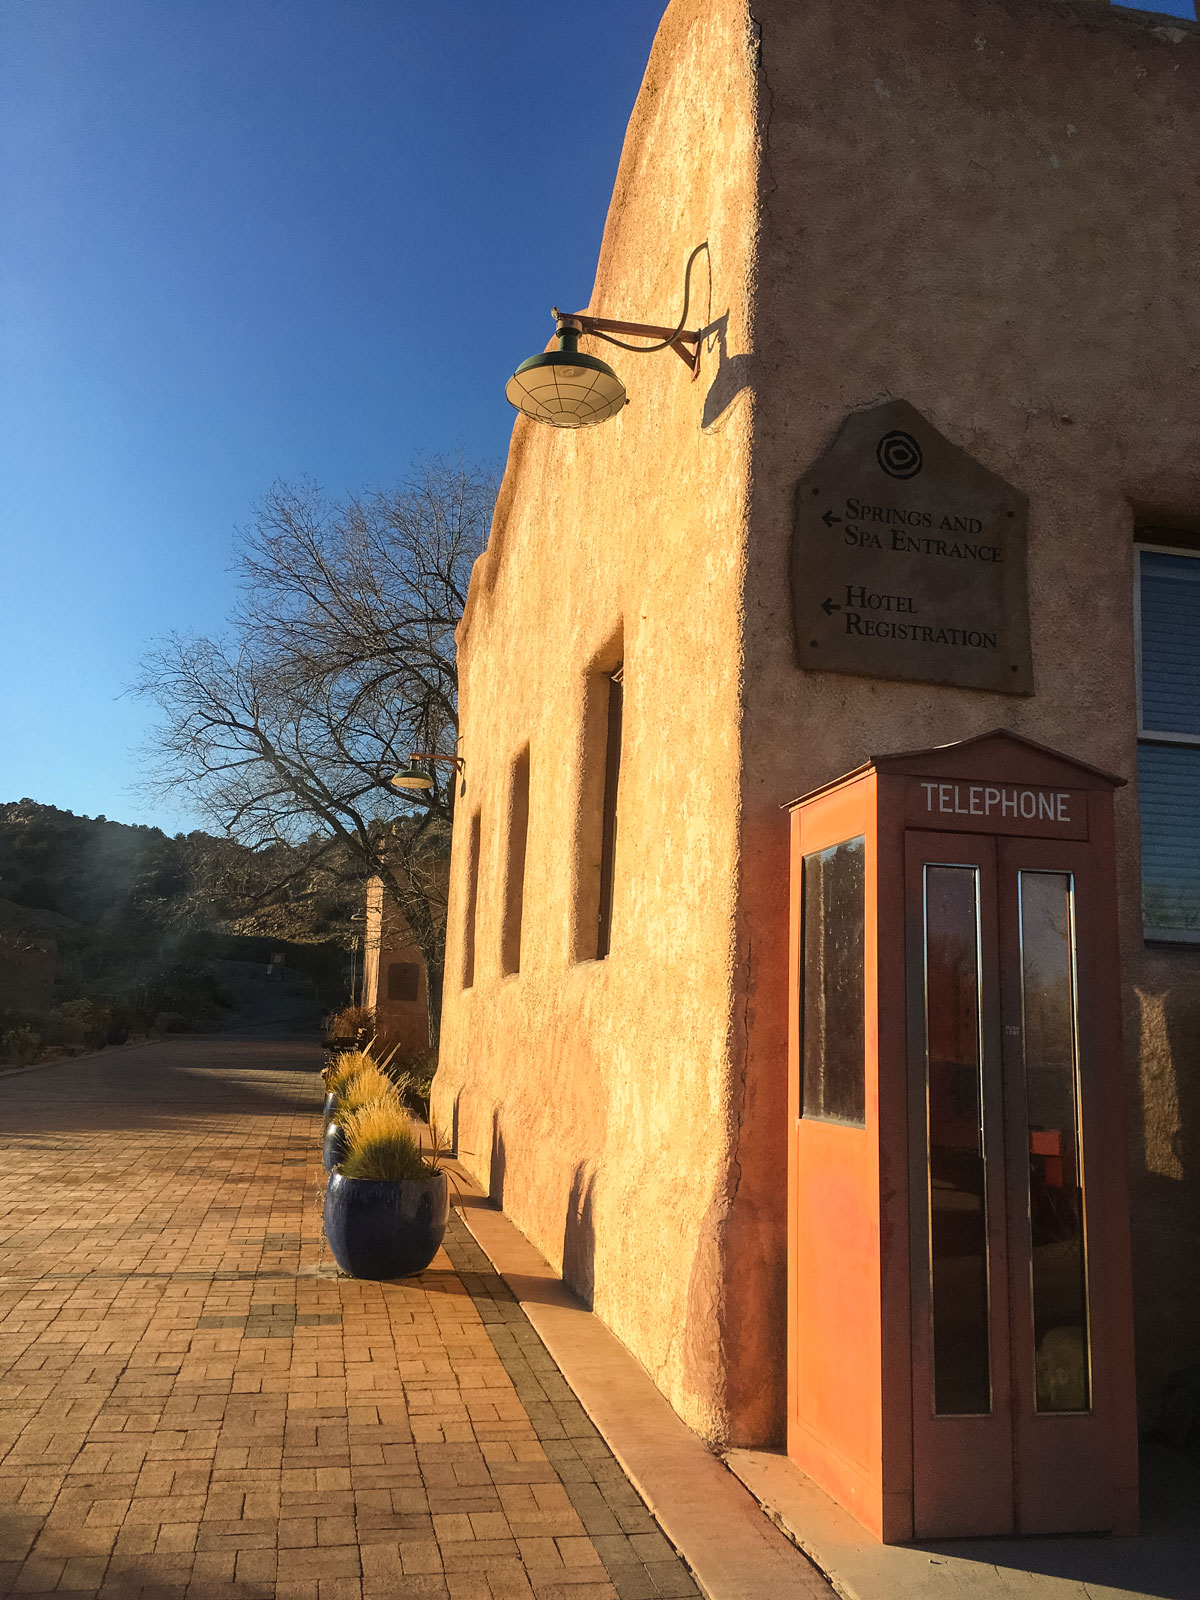 Adobe buildings abound at the resort with fire pits, desert plants and rock gardens scattered around the property.